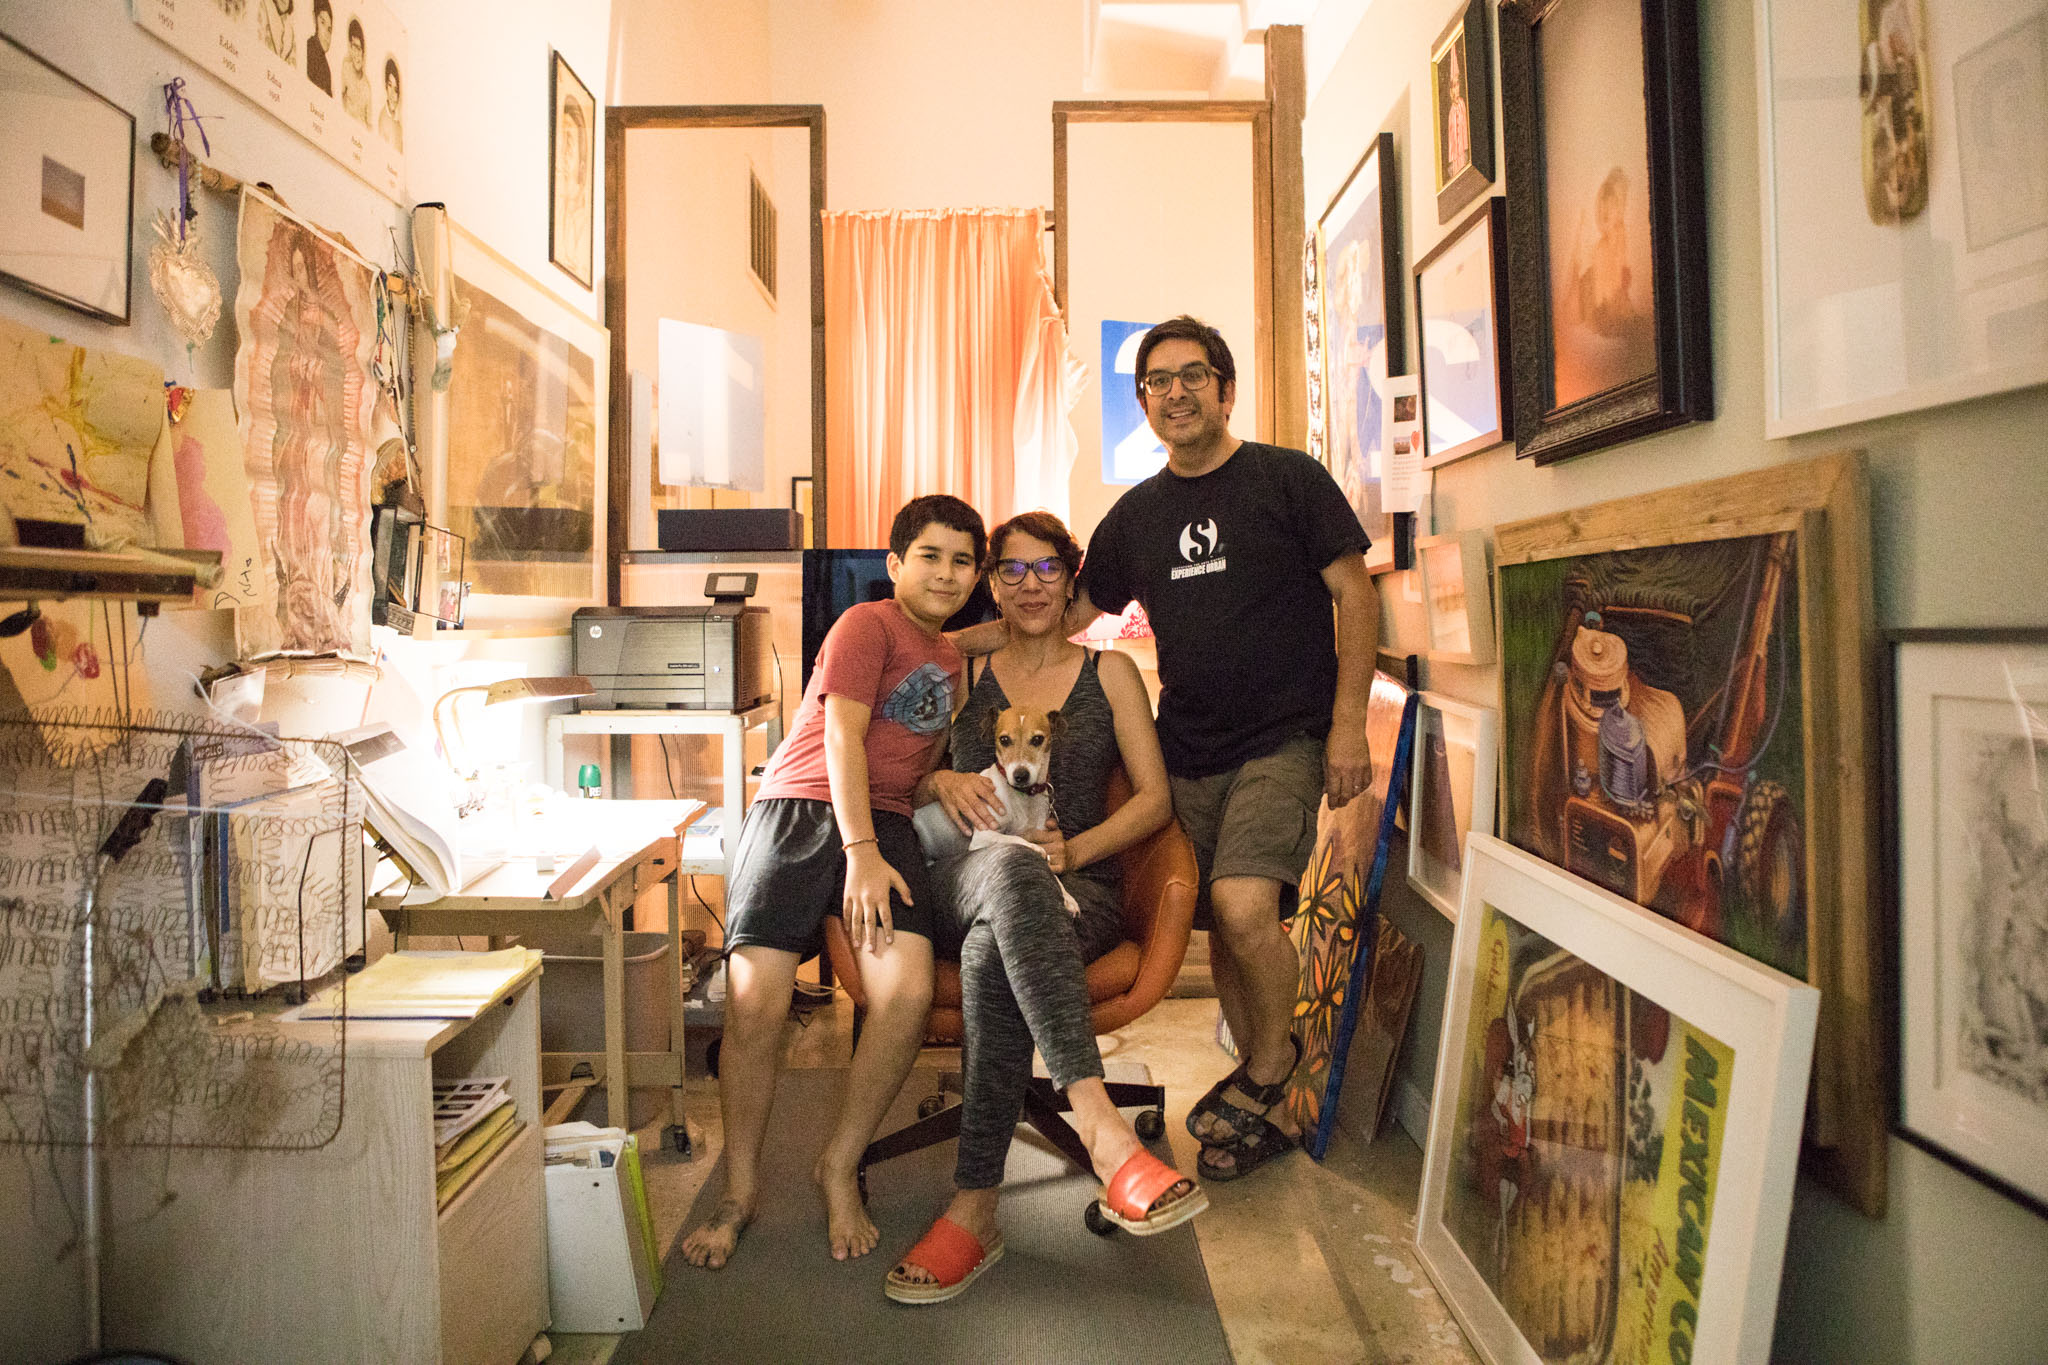 (From right) Andy Benavides, Yvette Benavides, Jake the dog, and Agusto, 11, sit in Andy's office in their home in 1906 Studio on Second Saturday.